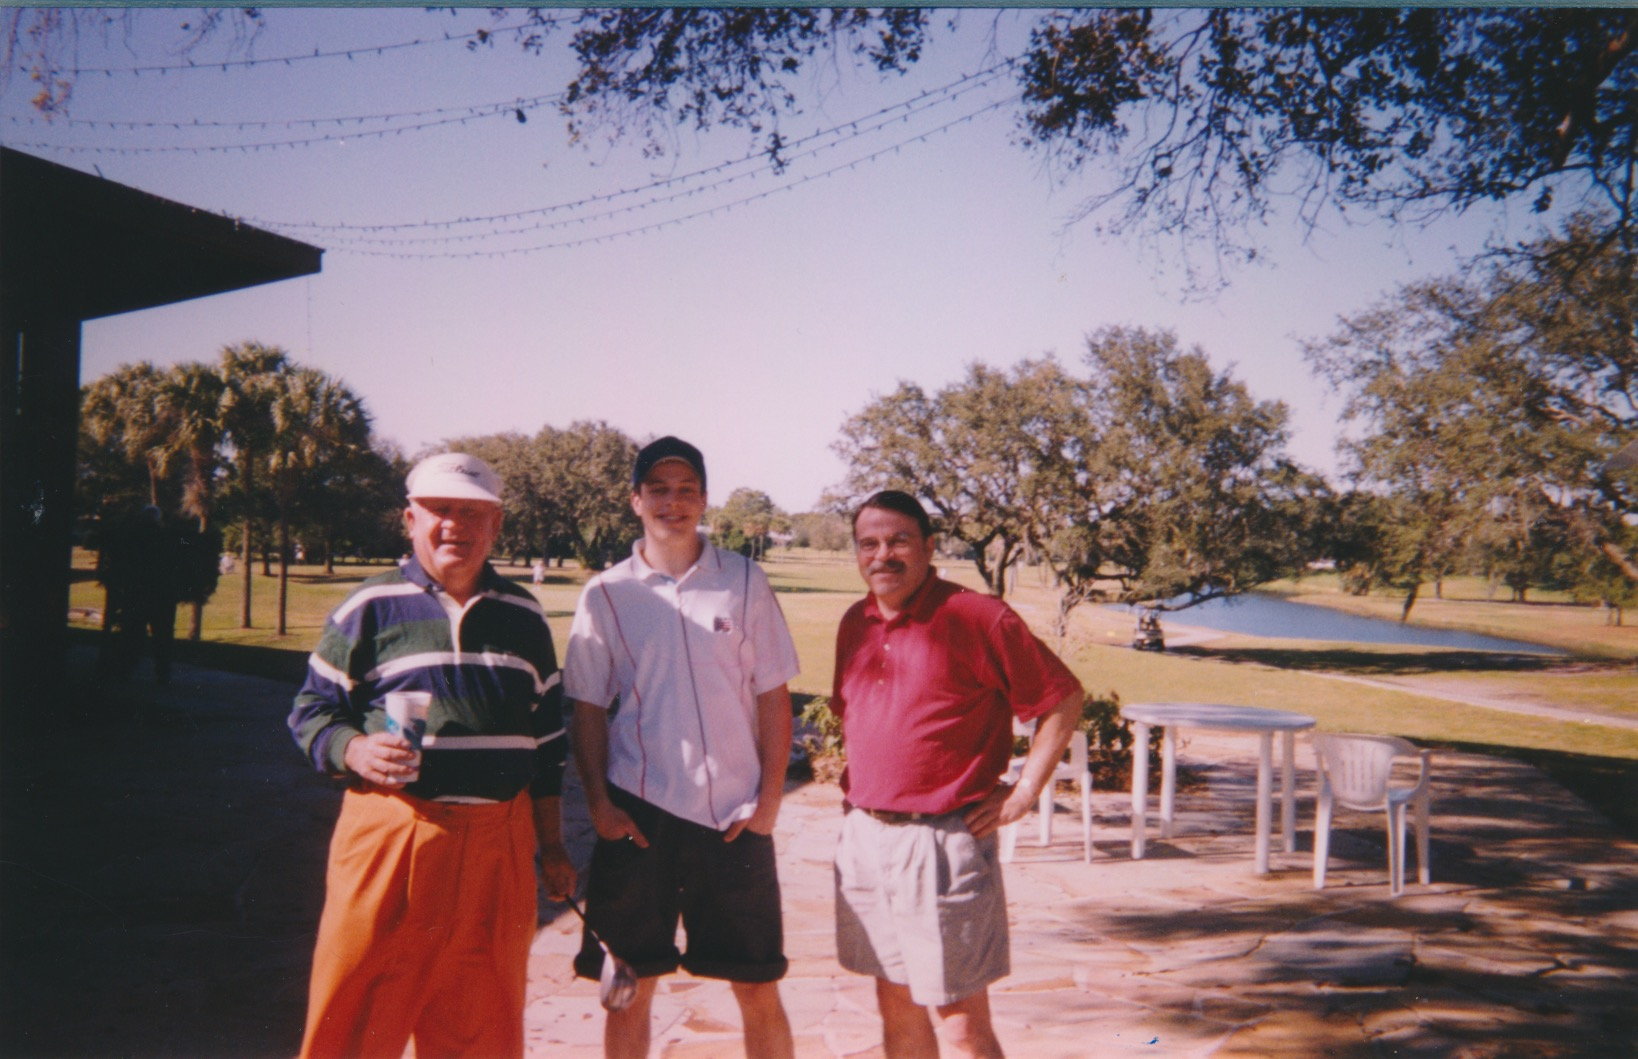 Moe Norman with Court and Bob Desautels